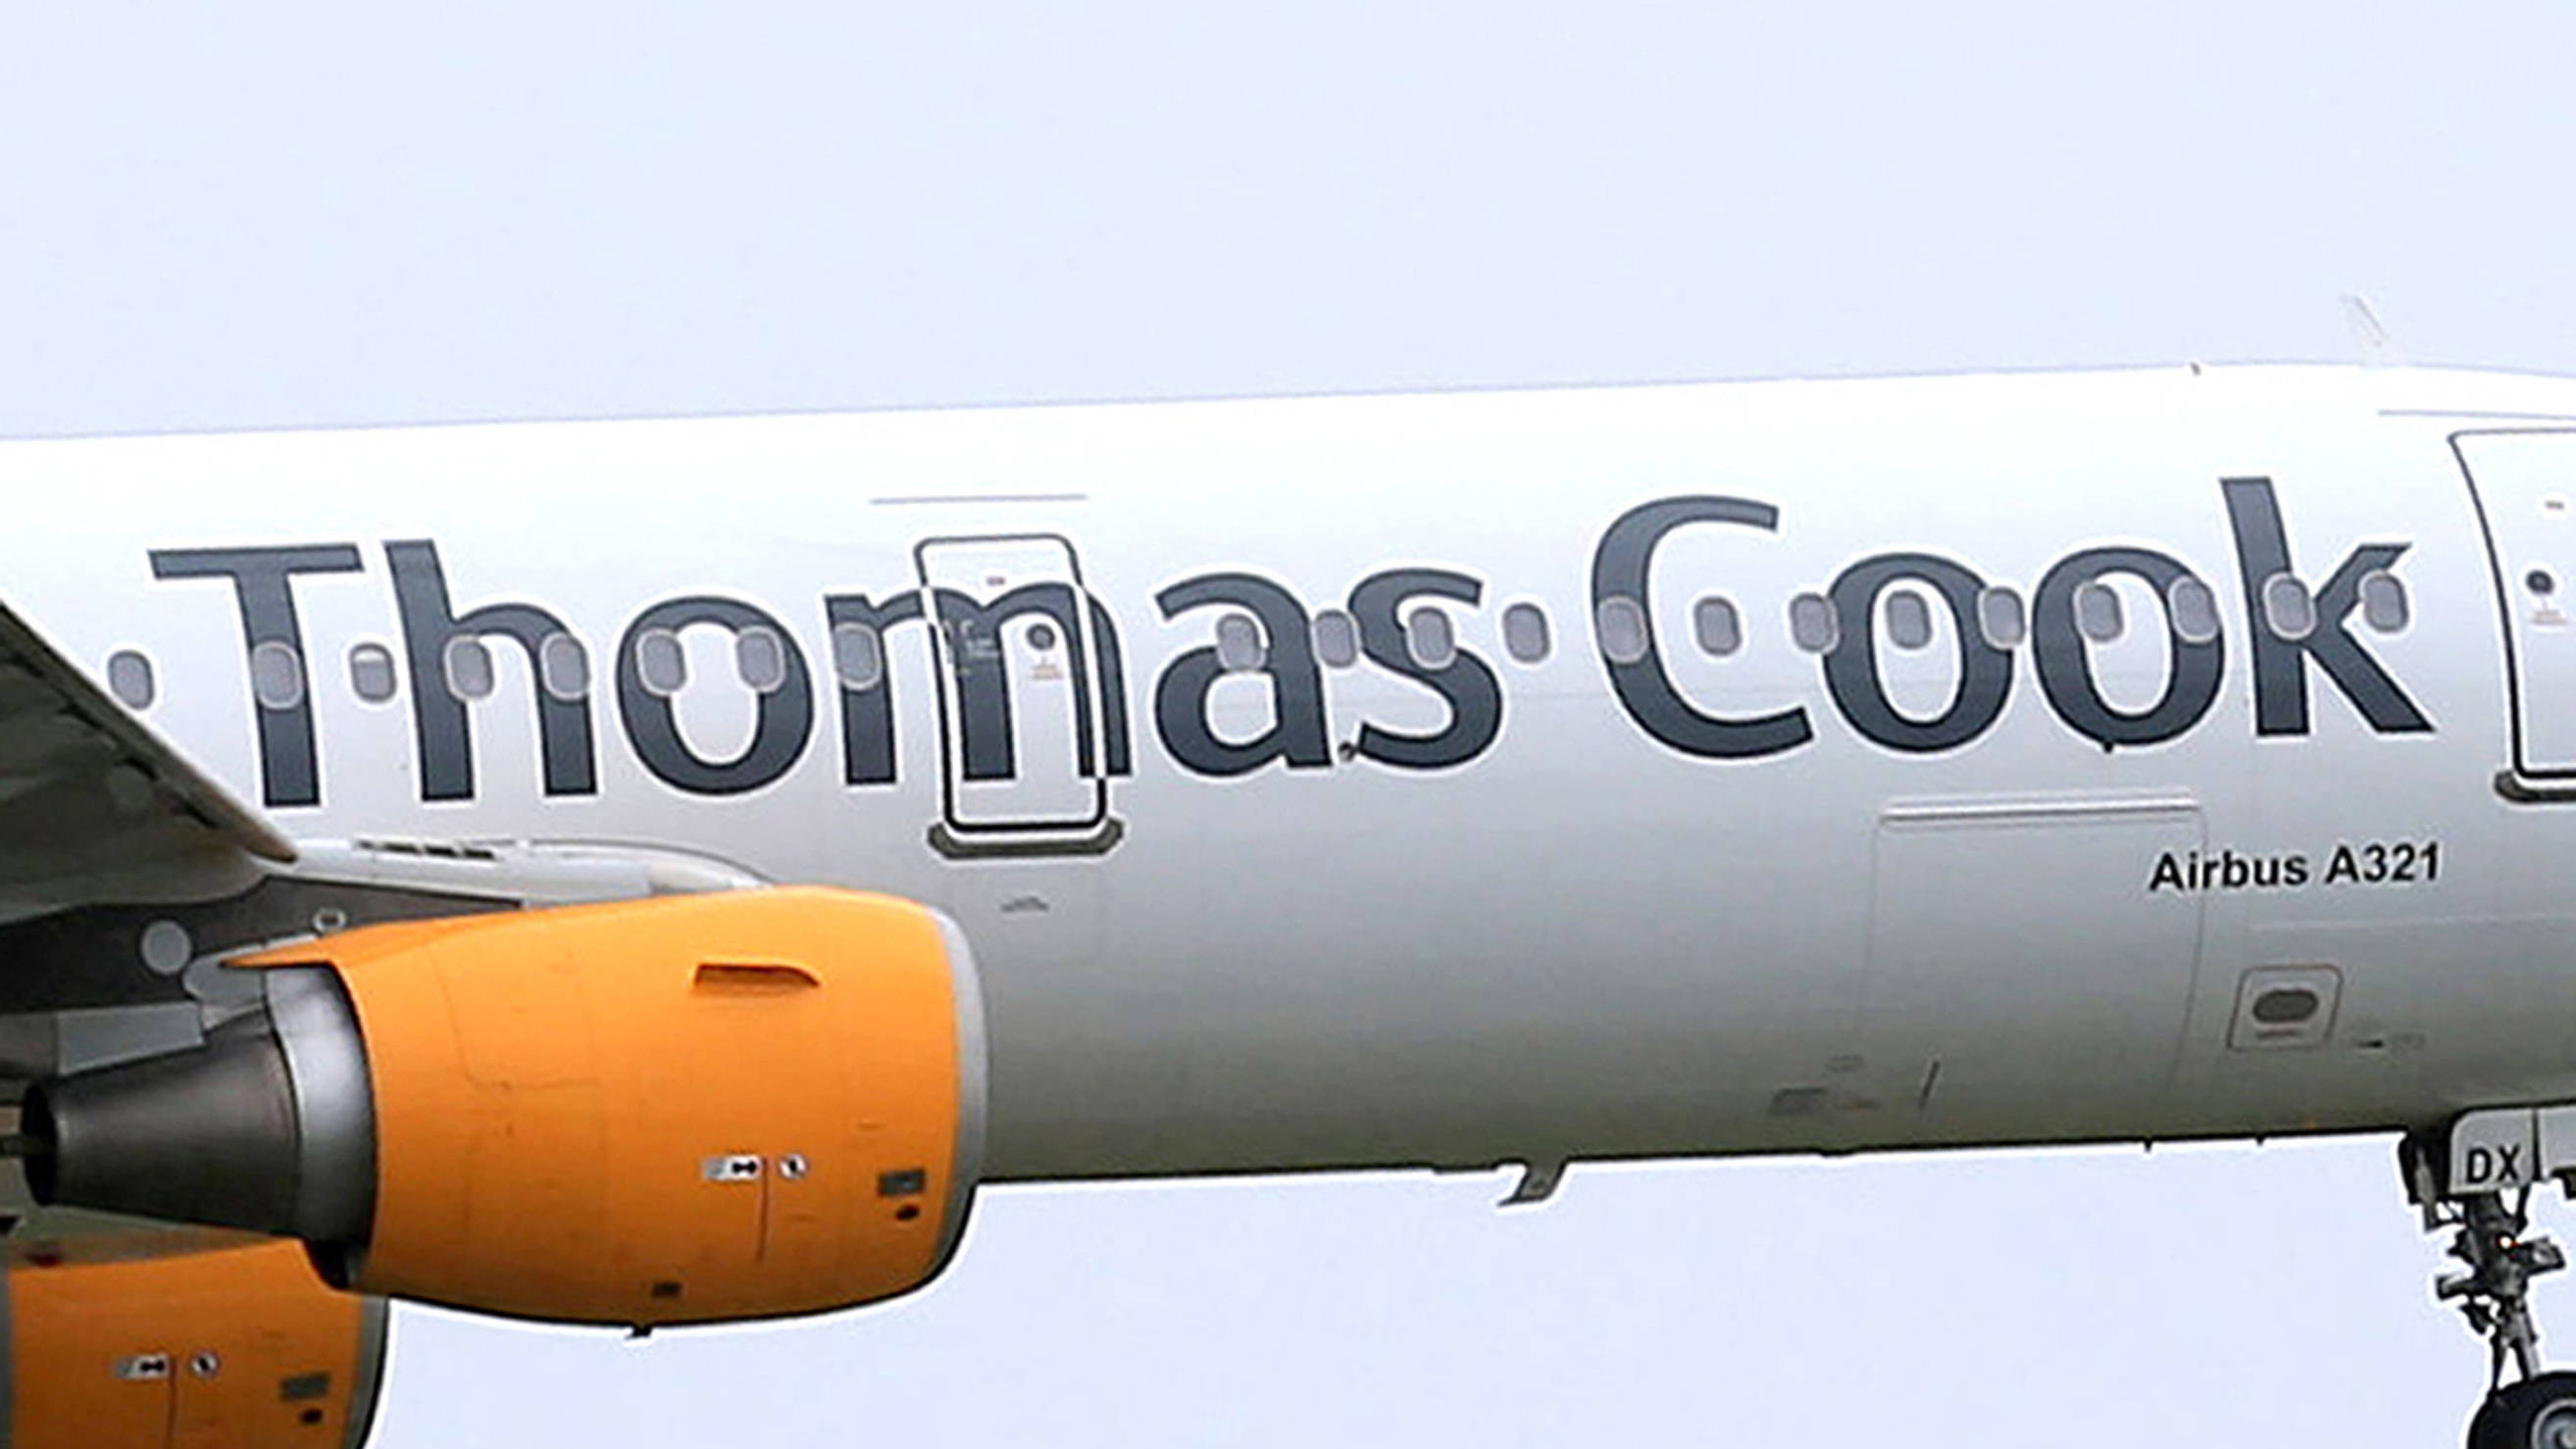 Thomas Cook In Last Minute Rescue Talks: How Likely Are They To Survive?